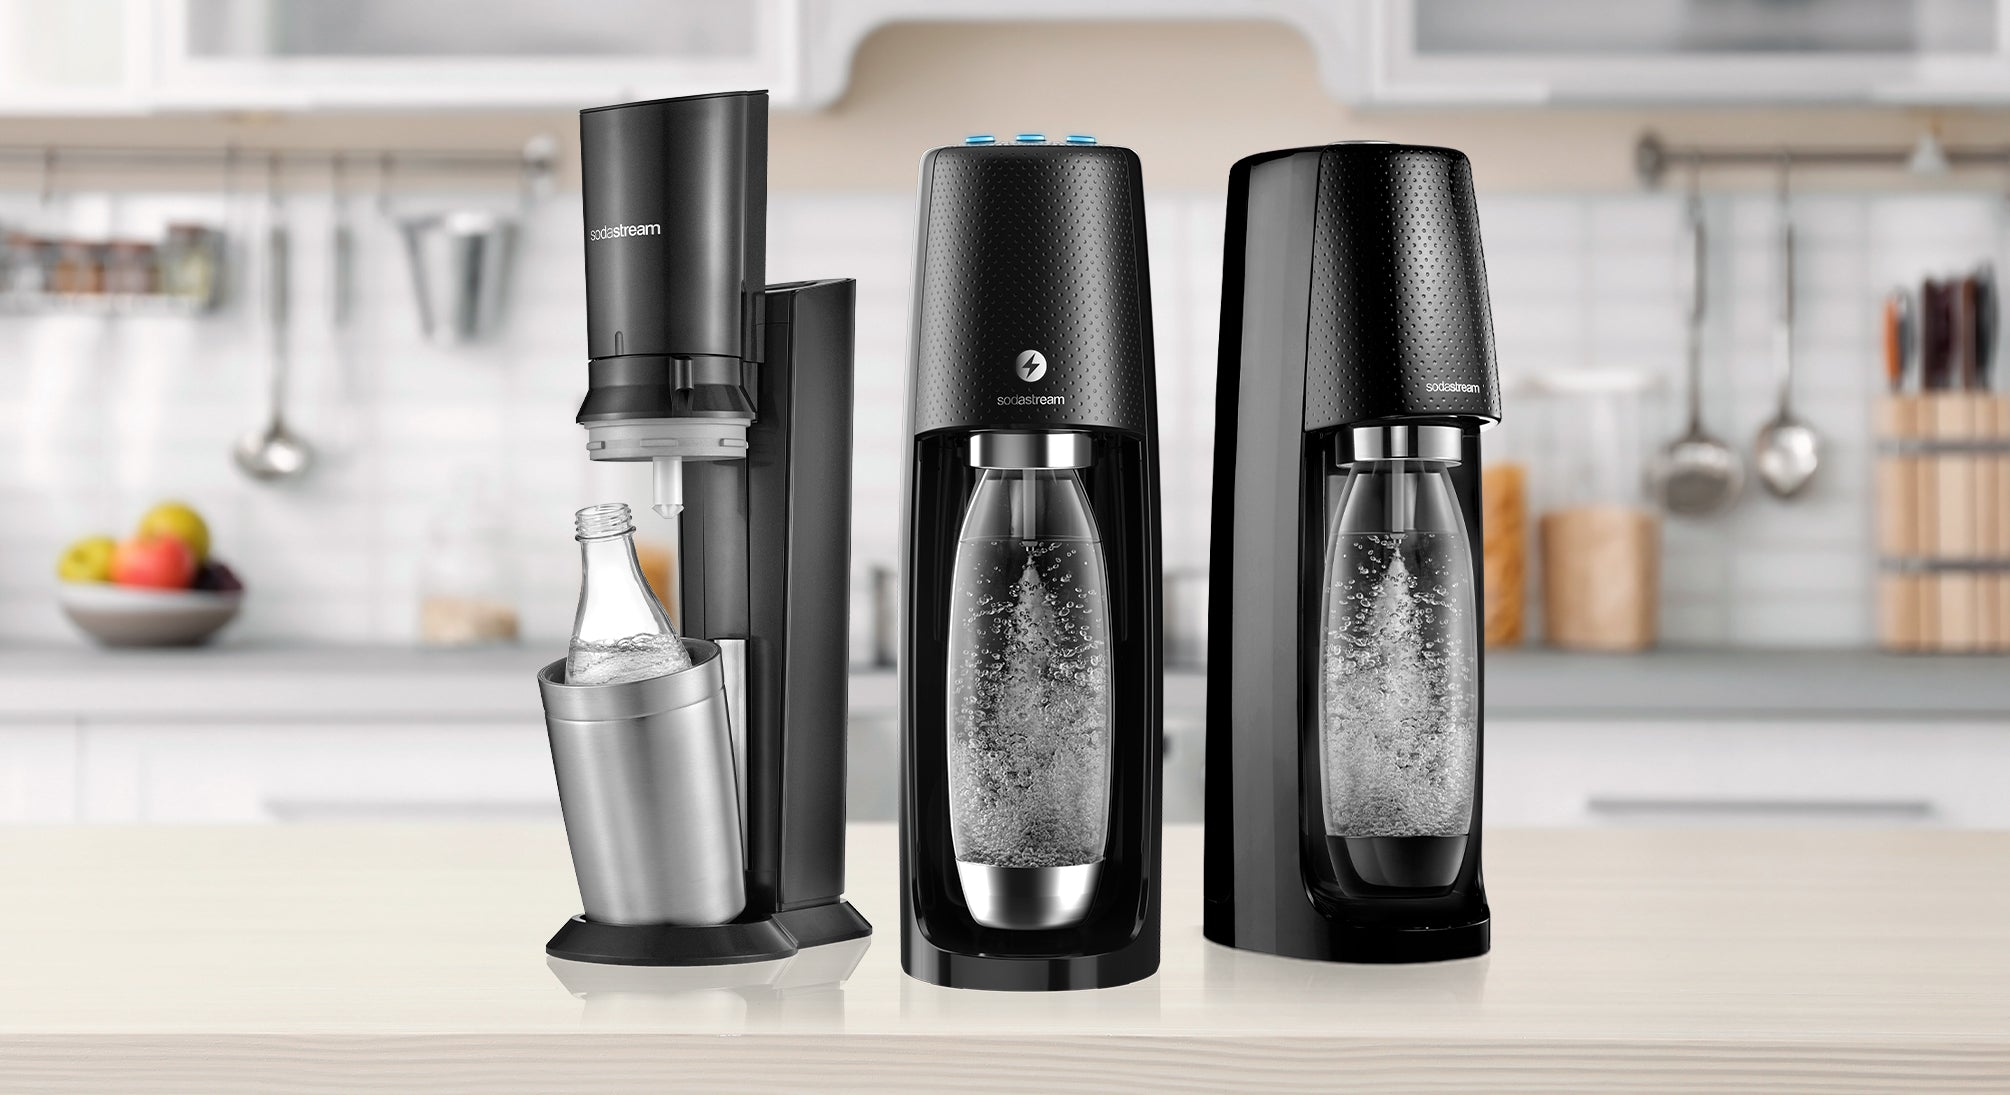 Compare Sparkling Water Maker